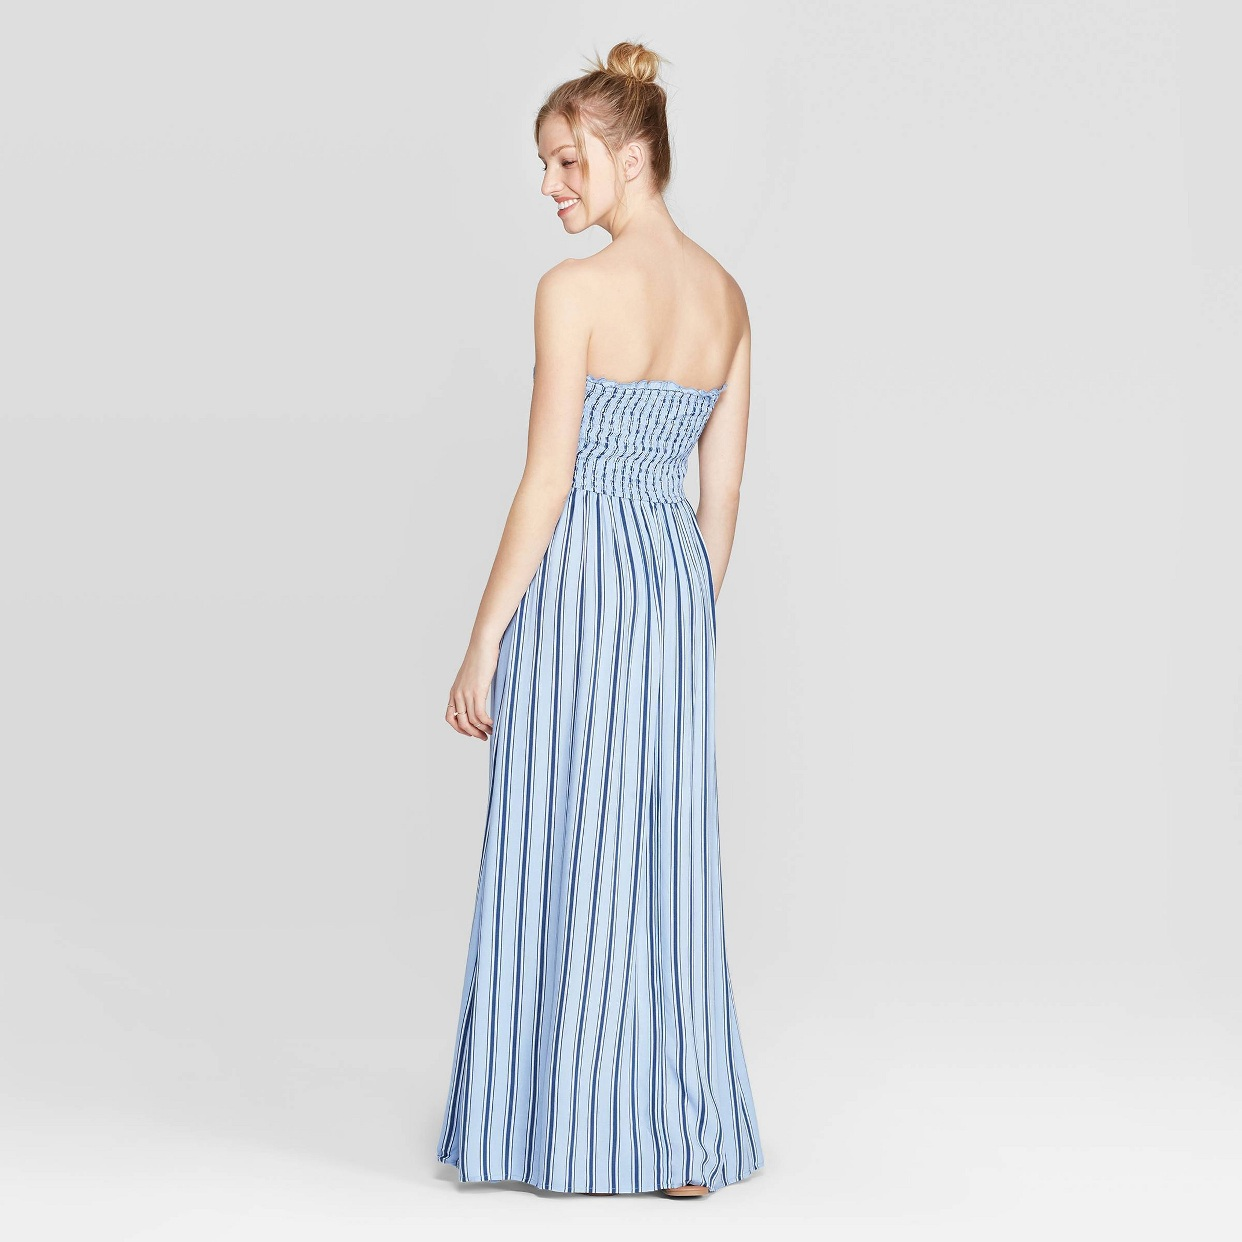 - Love everything about this dress! The material is light and airy and can be dressed up or down!Find it here.